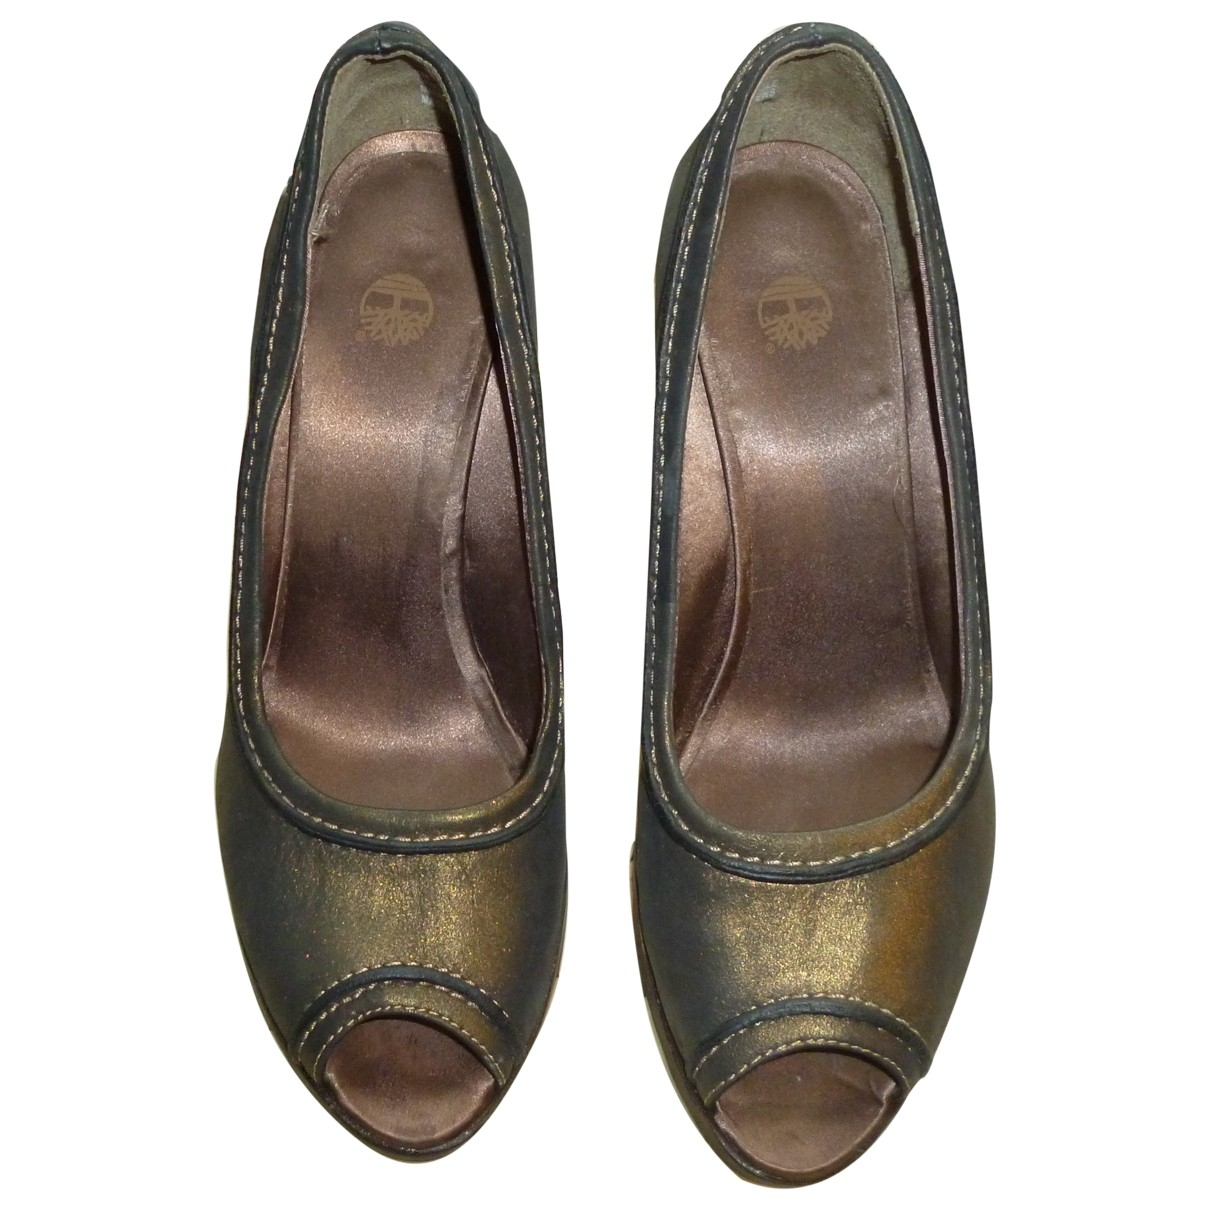 Timberland \N Green Leather Heels for Women 8 US